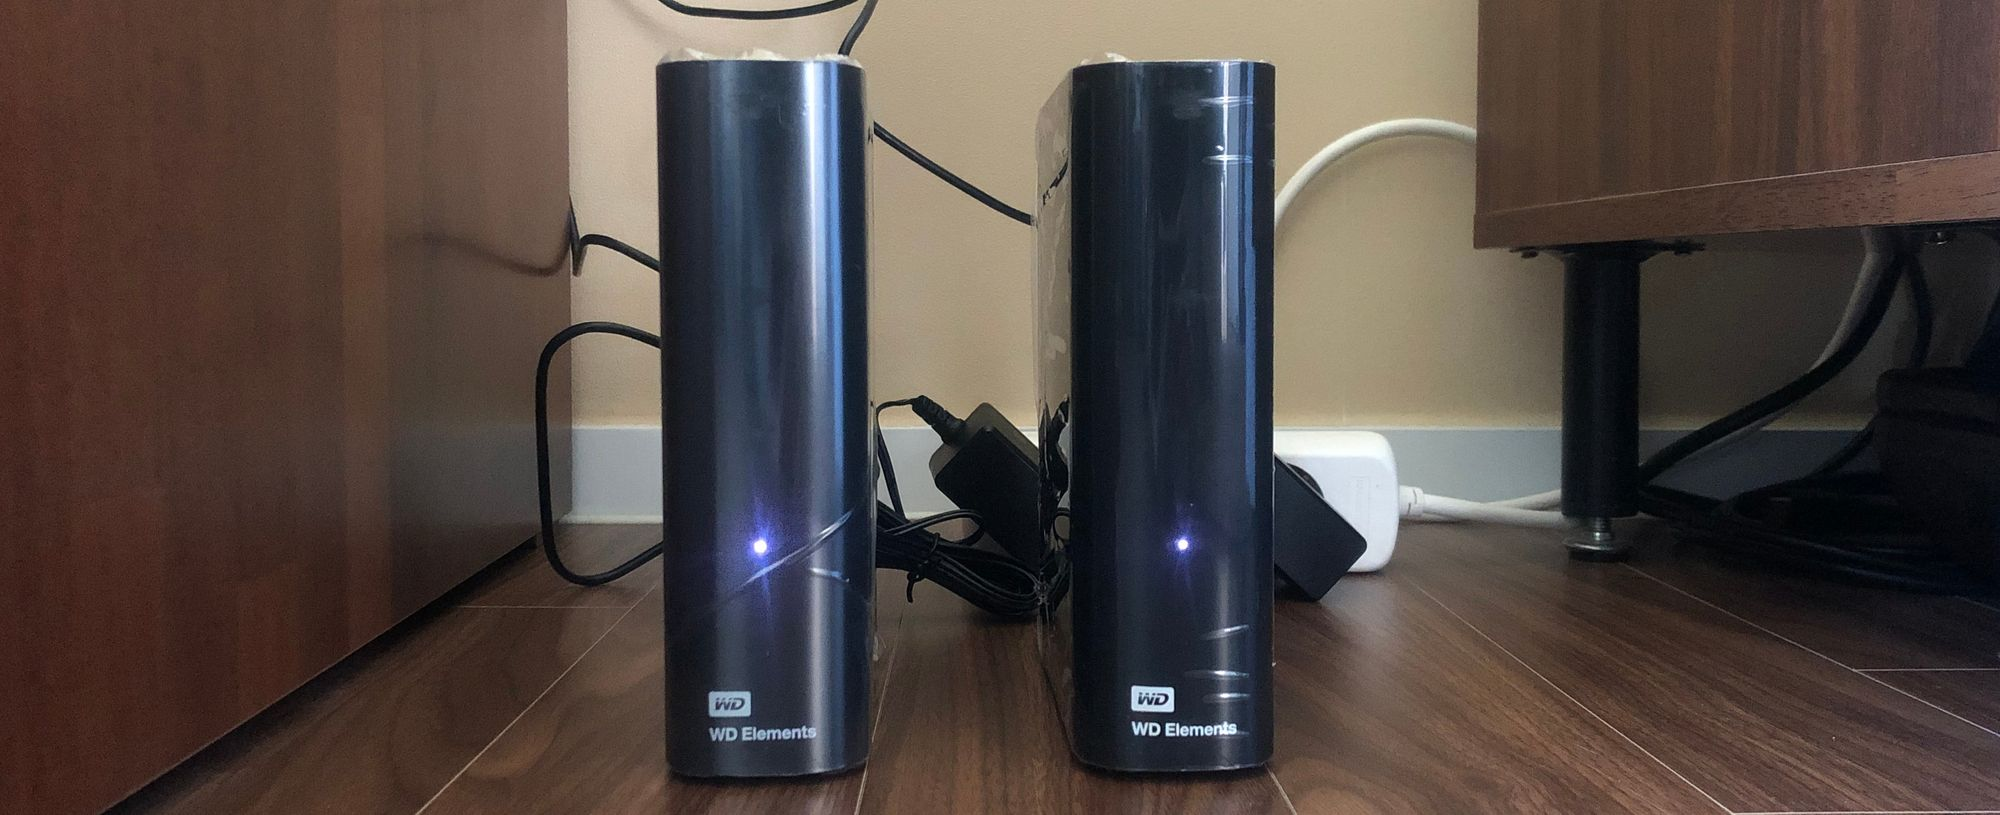 Two Western Digital Elements drives in their USB enclosures with activity lights blinking.